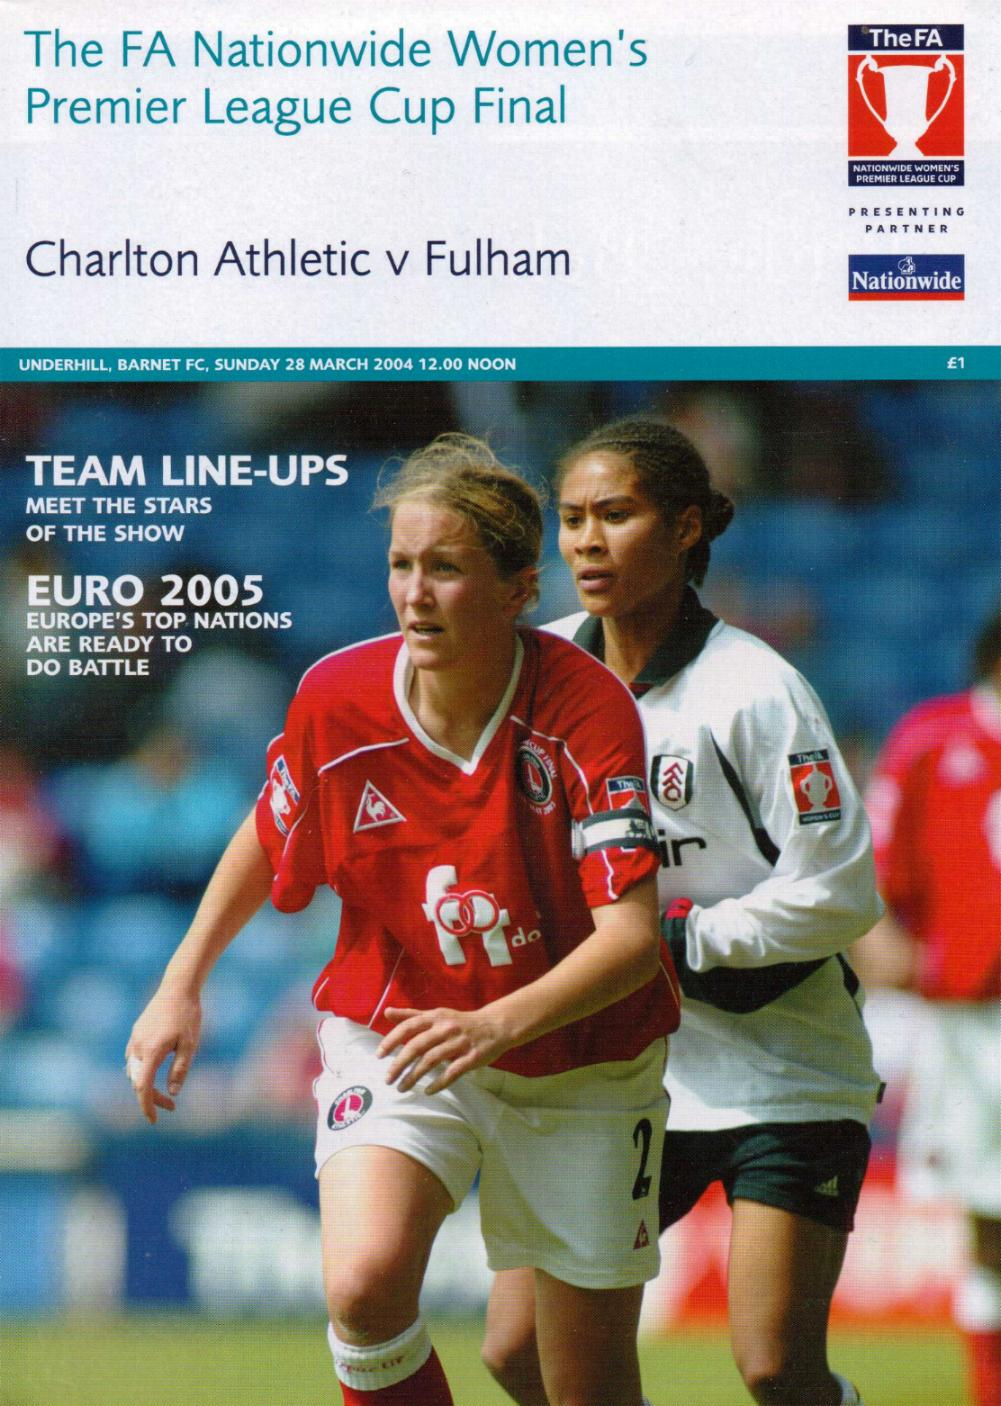 2004 WOMENS LEAGUE CUP FINAL - FULHAM v CHARLTON ATHLETIC